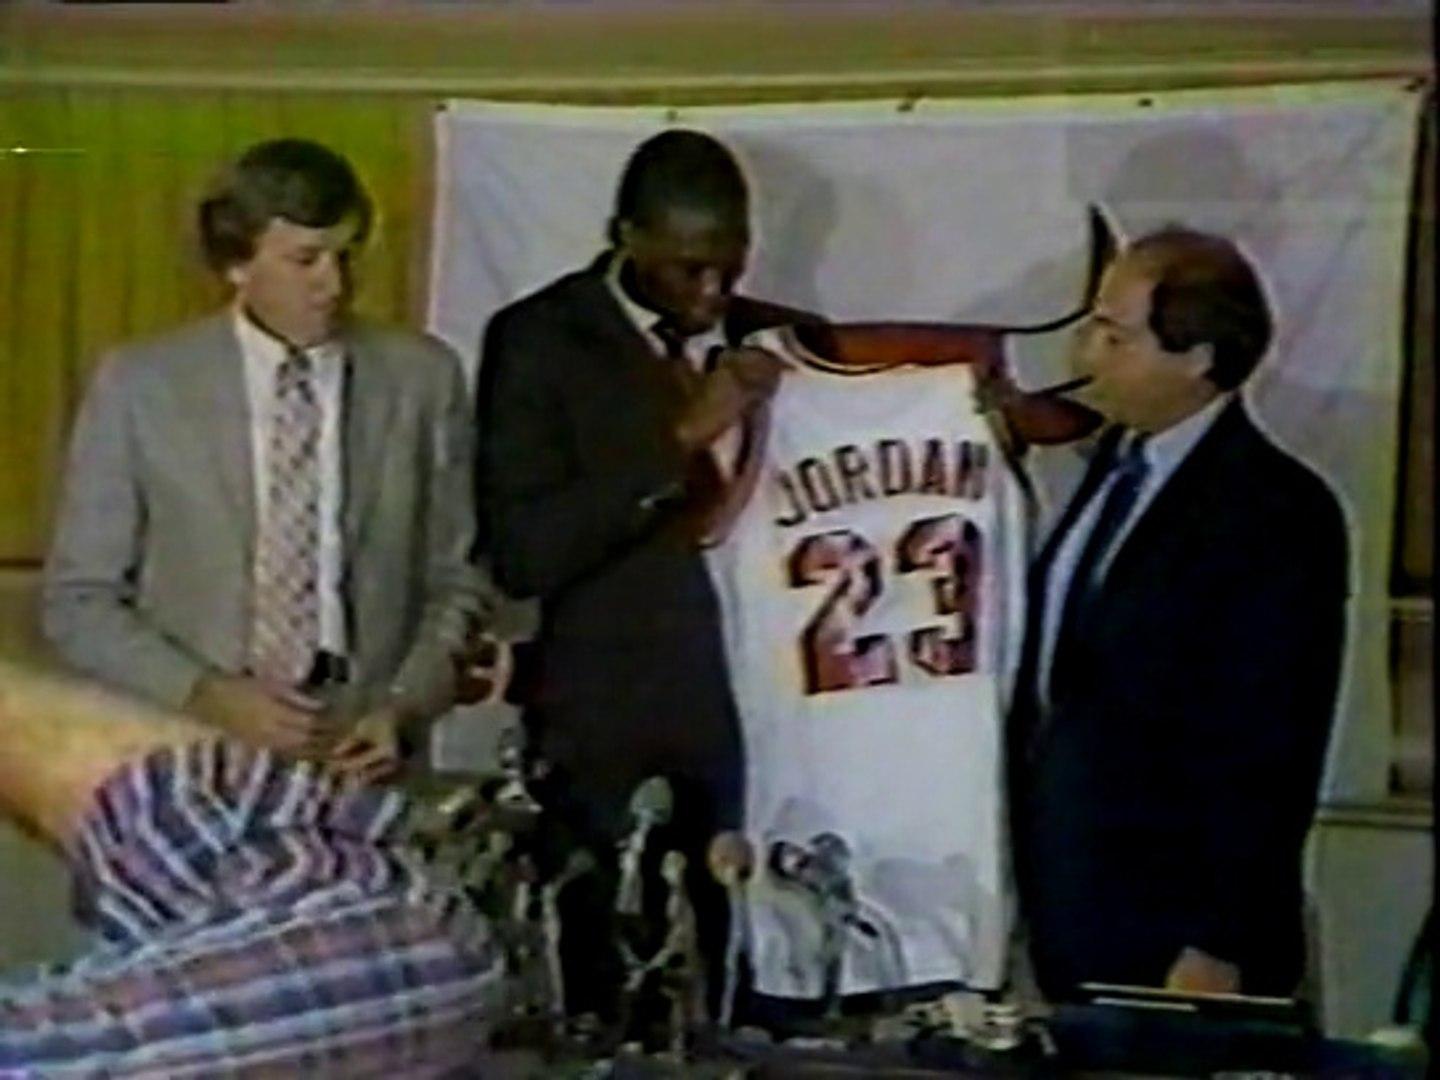 1993 MICHAEL JORDAN TRIBUTE SEGMENT FOLLOWING 1ST RETIREMENT ON 10-6-1993 RARE FOOTAGE